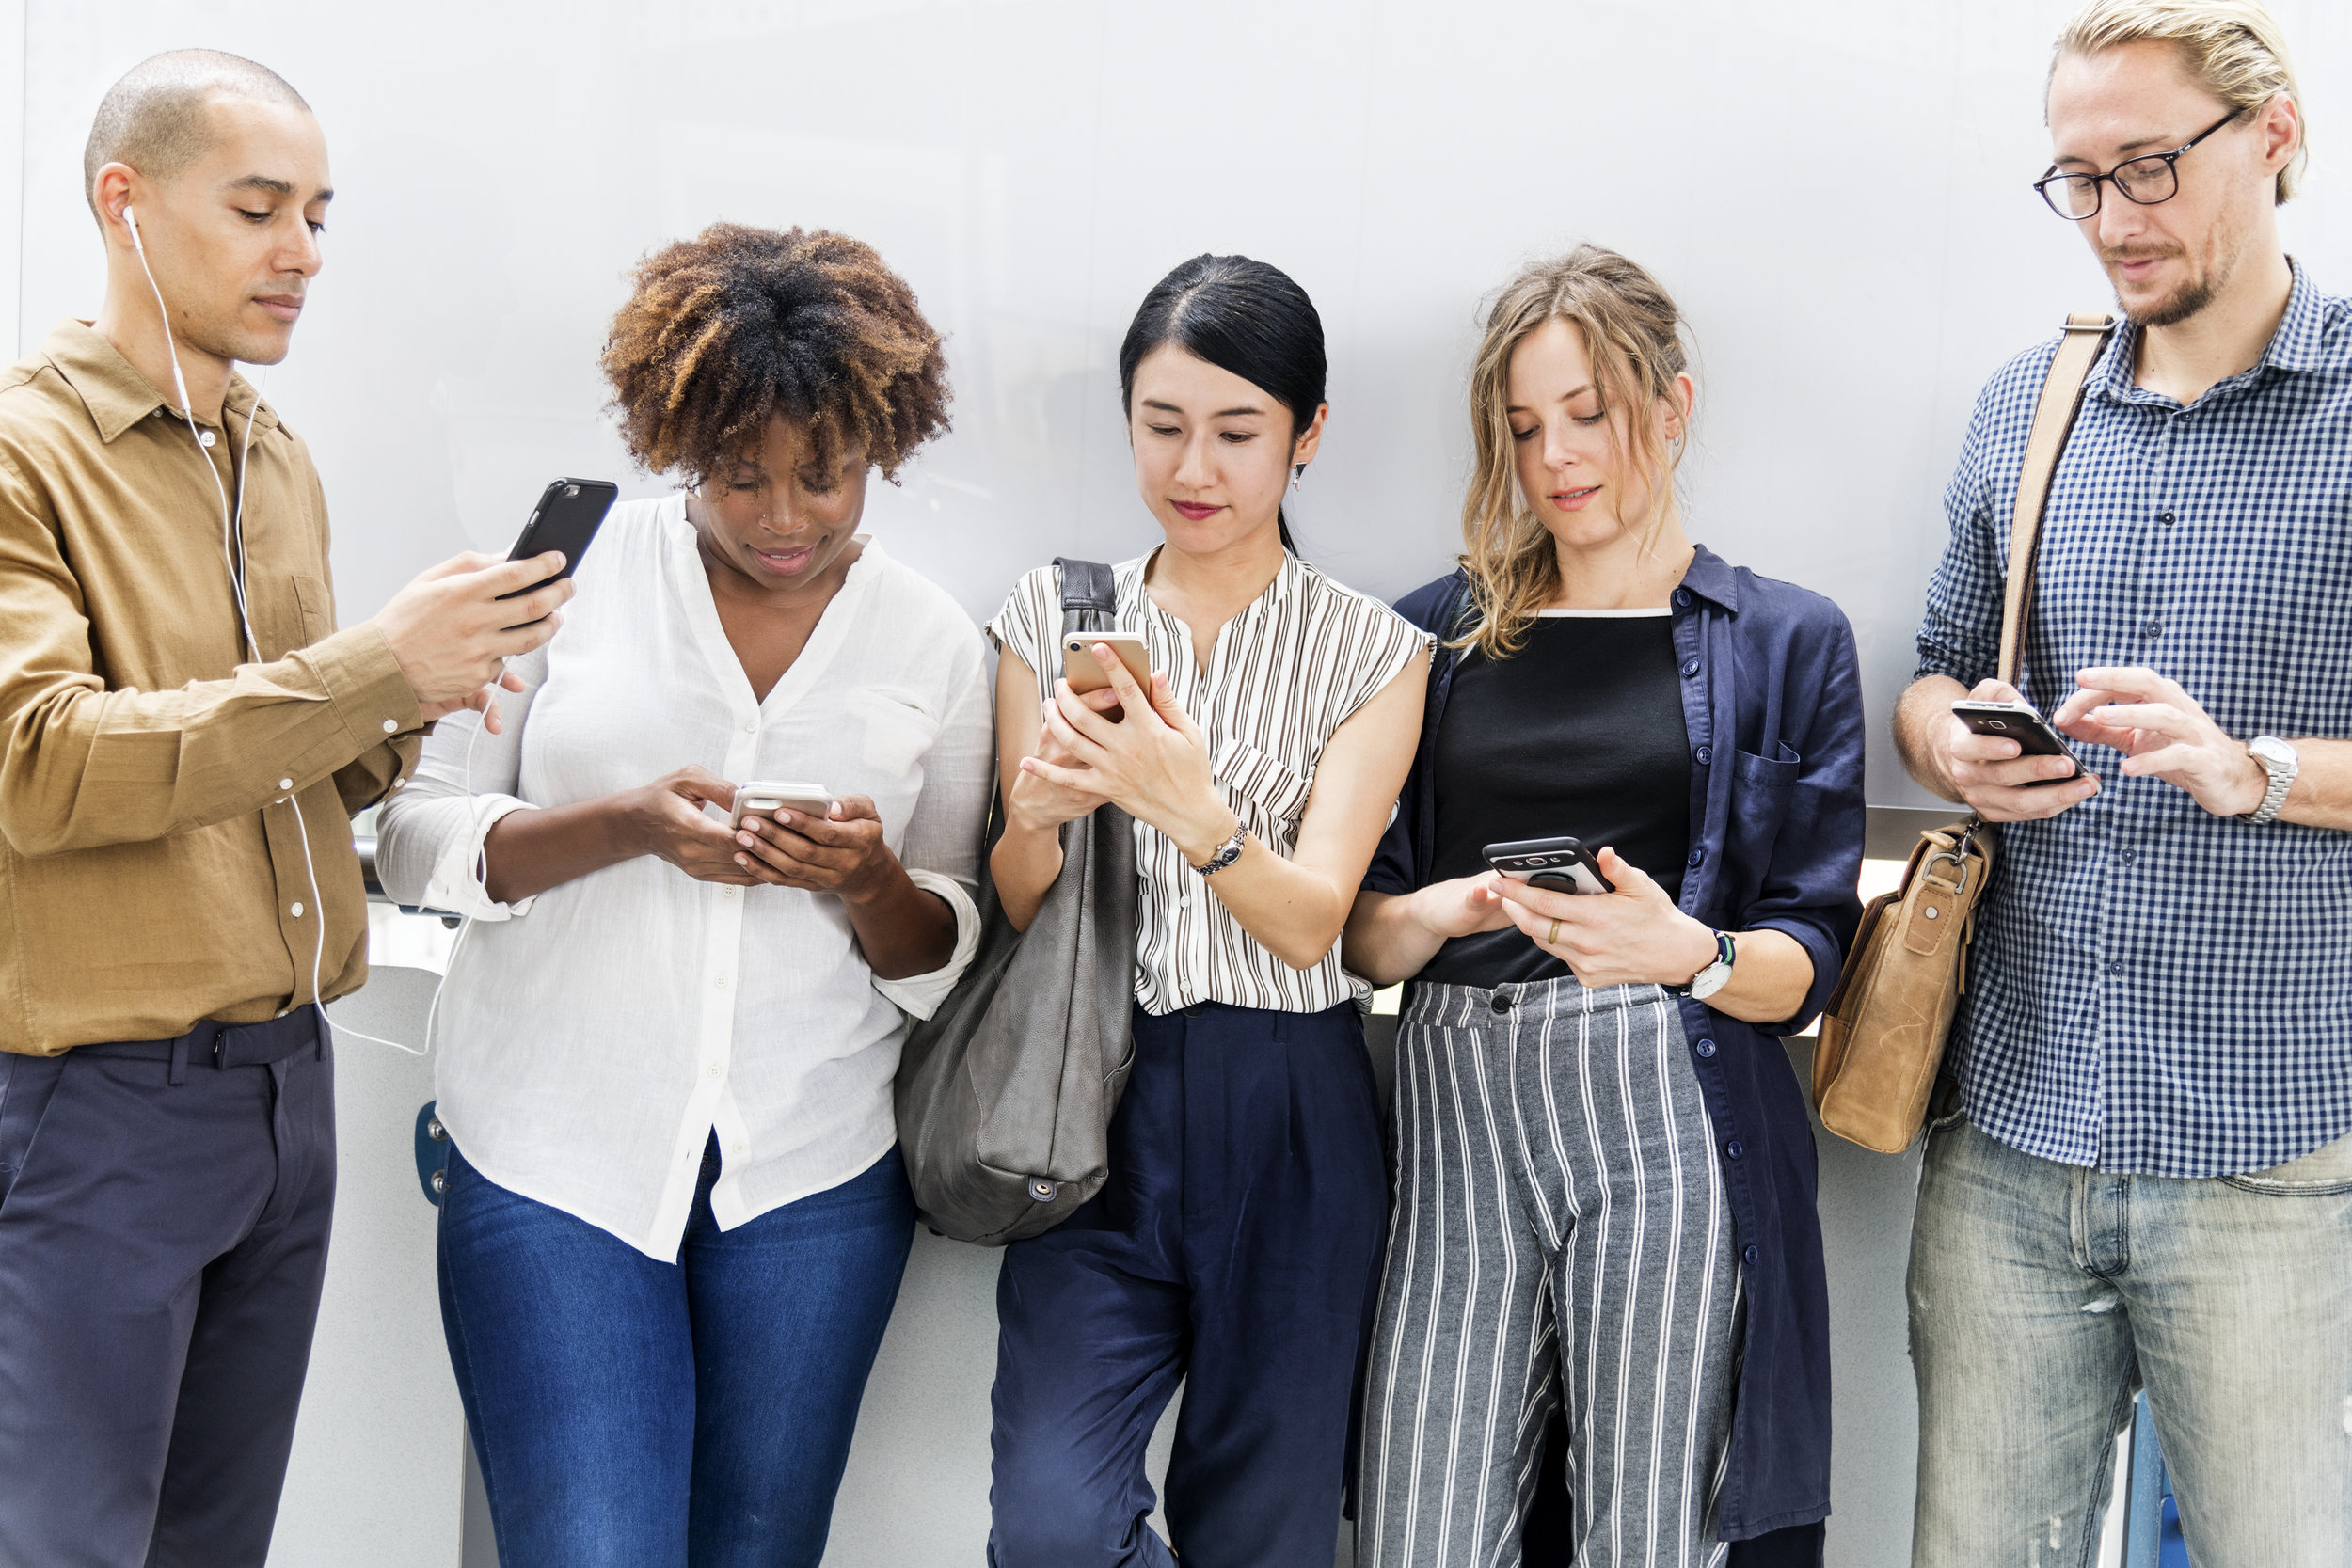 Direct & Personal customer service - By choosing CYBERMO for your business mobiles, you'll benefit from unrivalled customer service. No matter which network you choose, you'll always deal with us directly via your dedicated account manager who really knows your account.